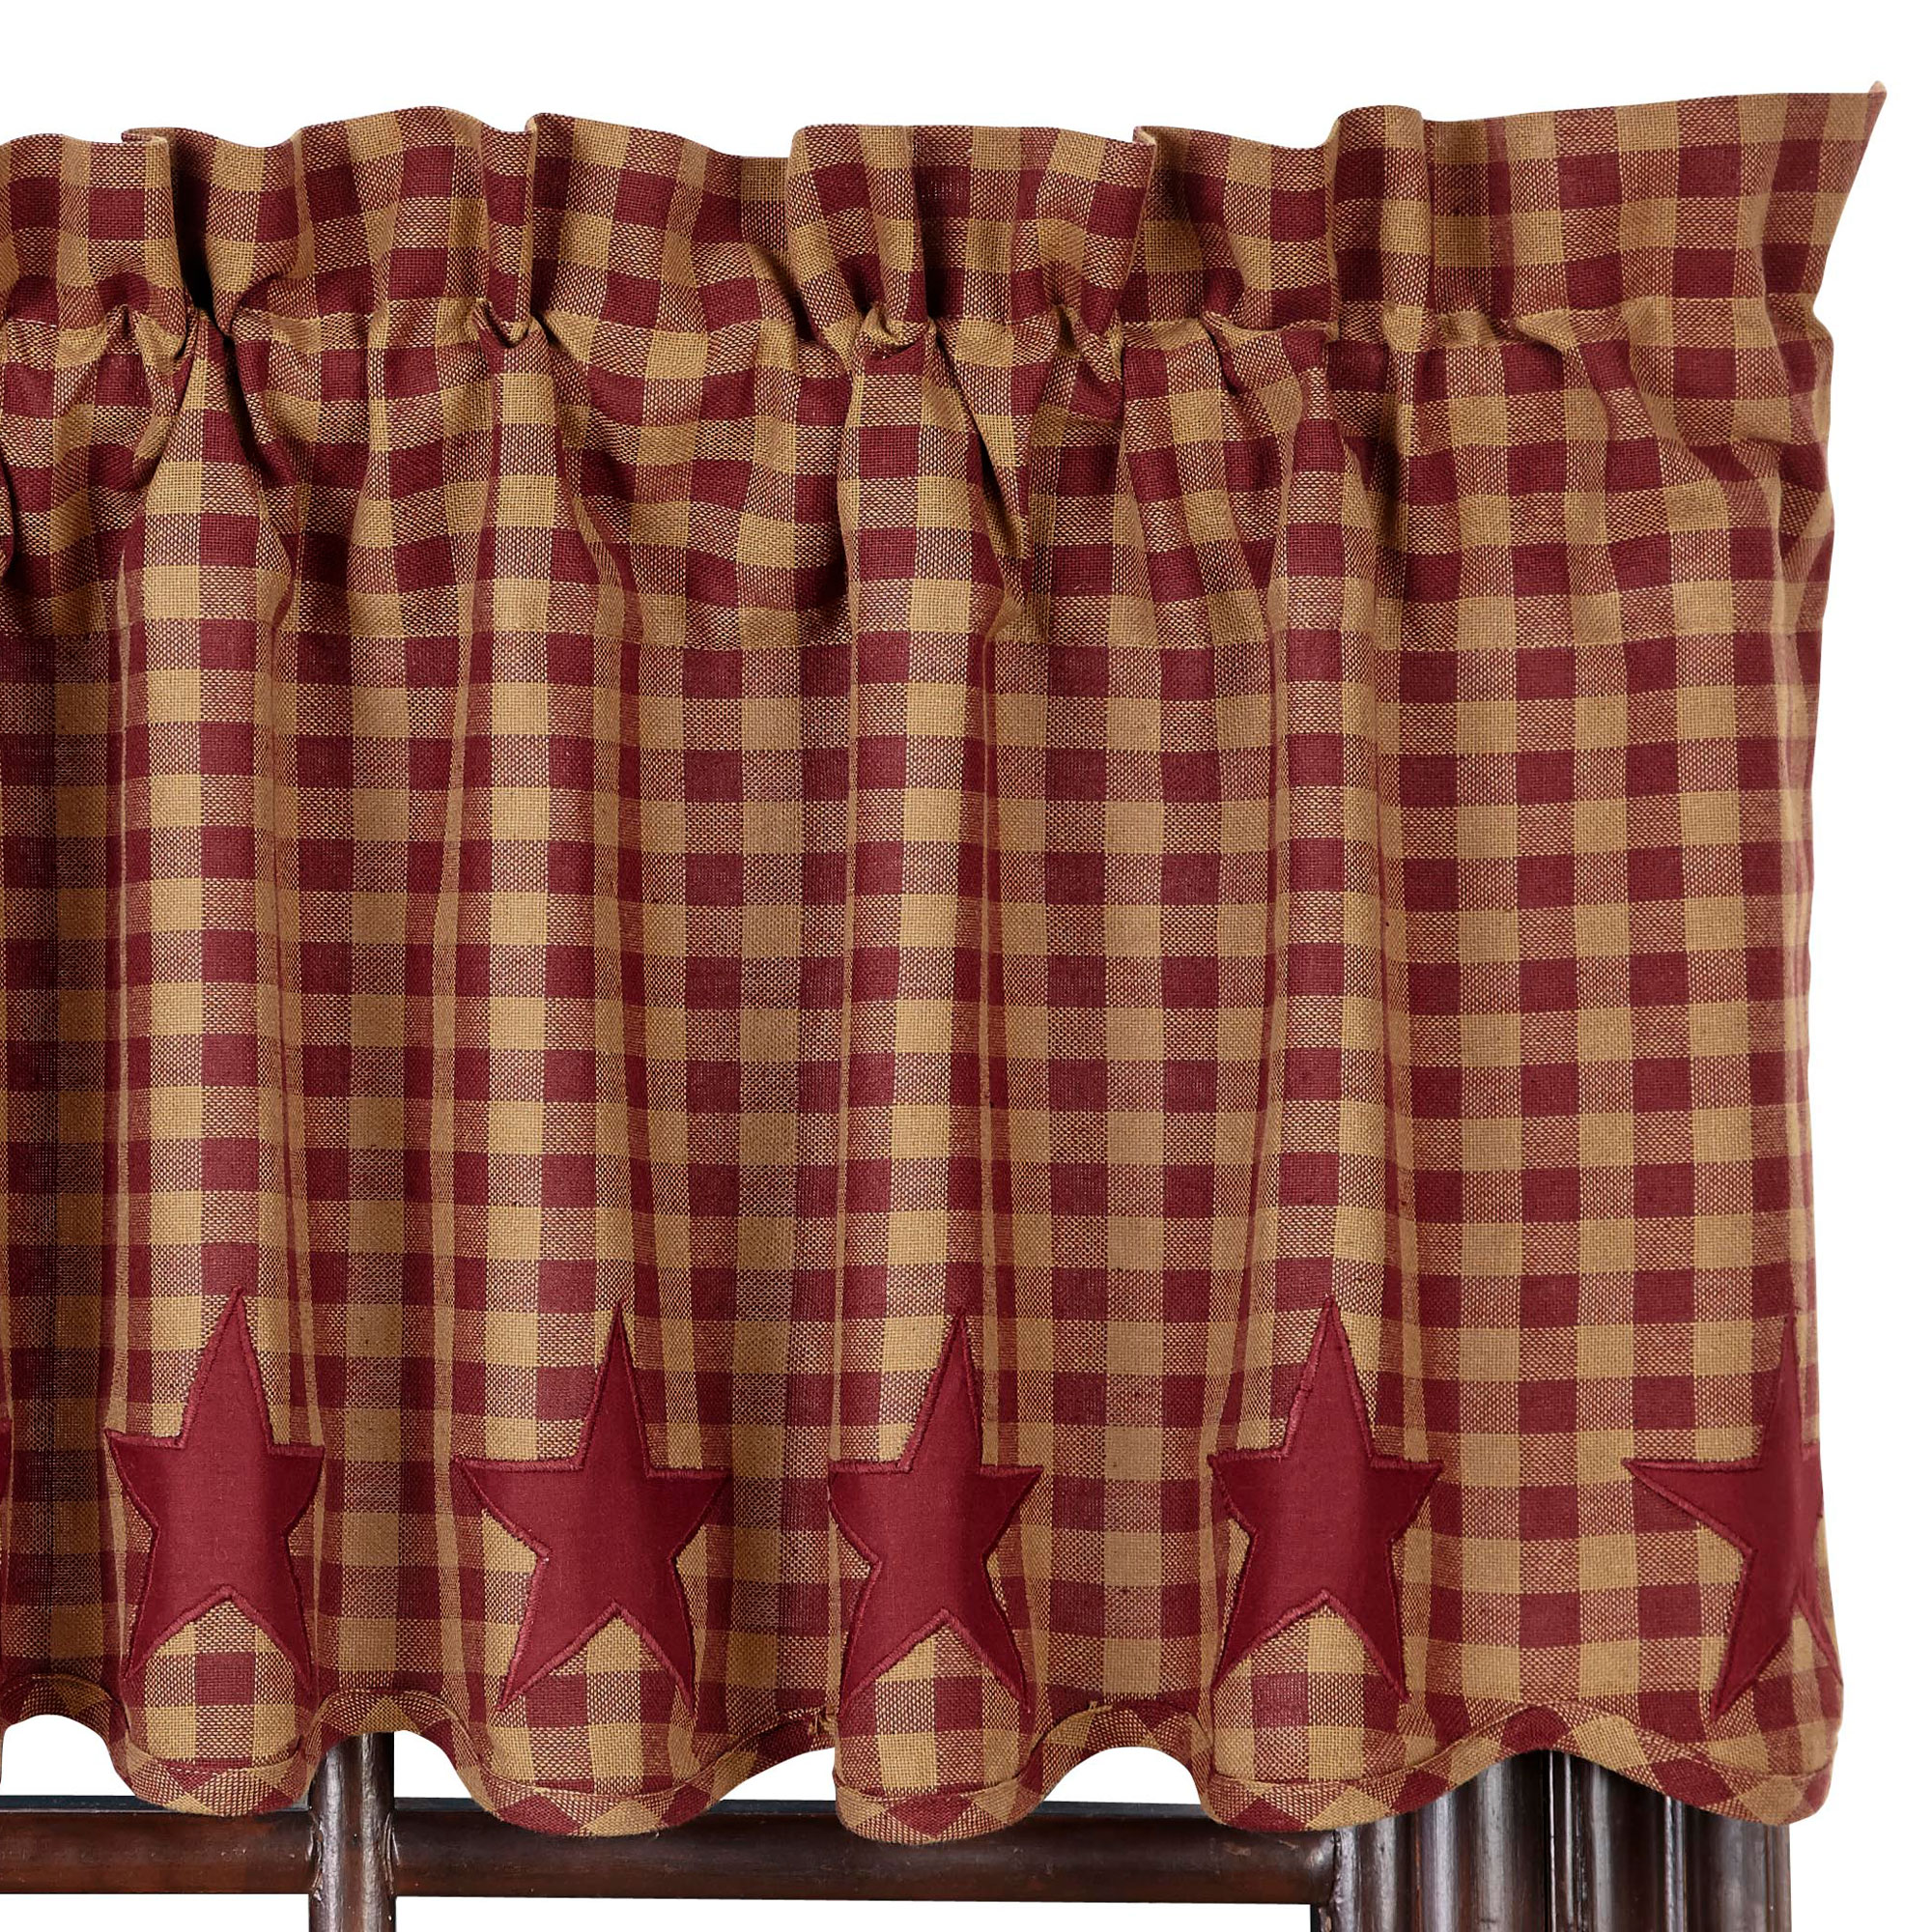 Star And Check Scalloped Country Curtain Valance Navy